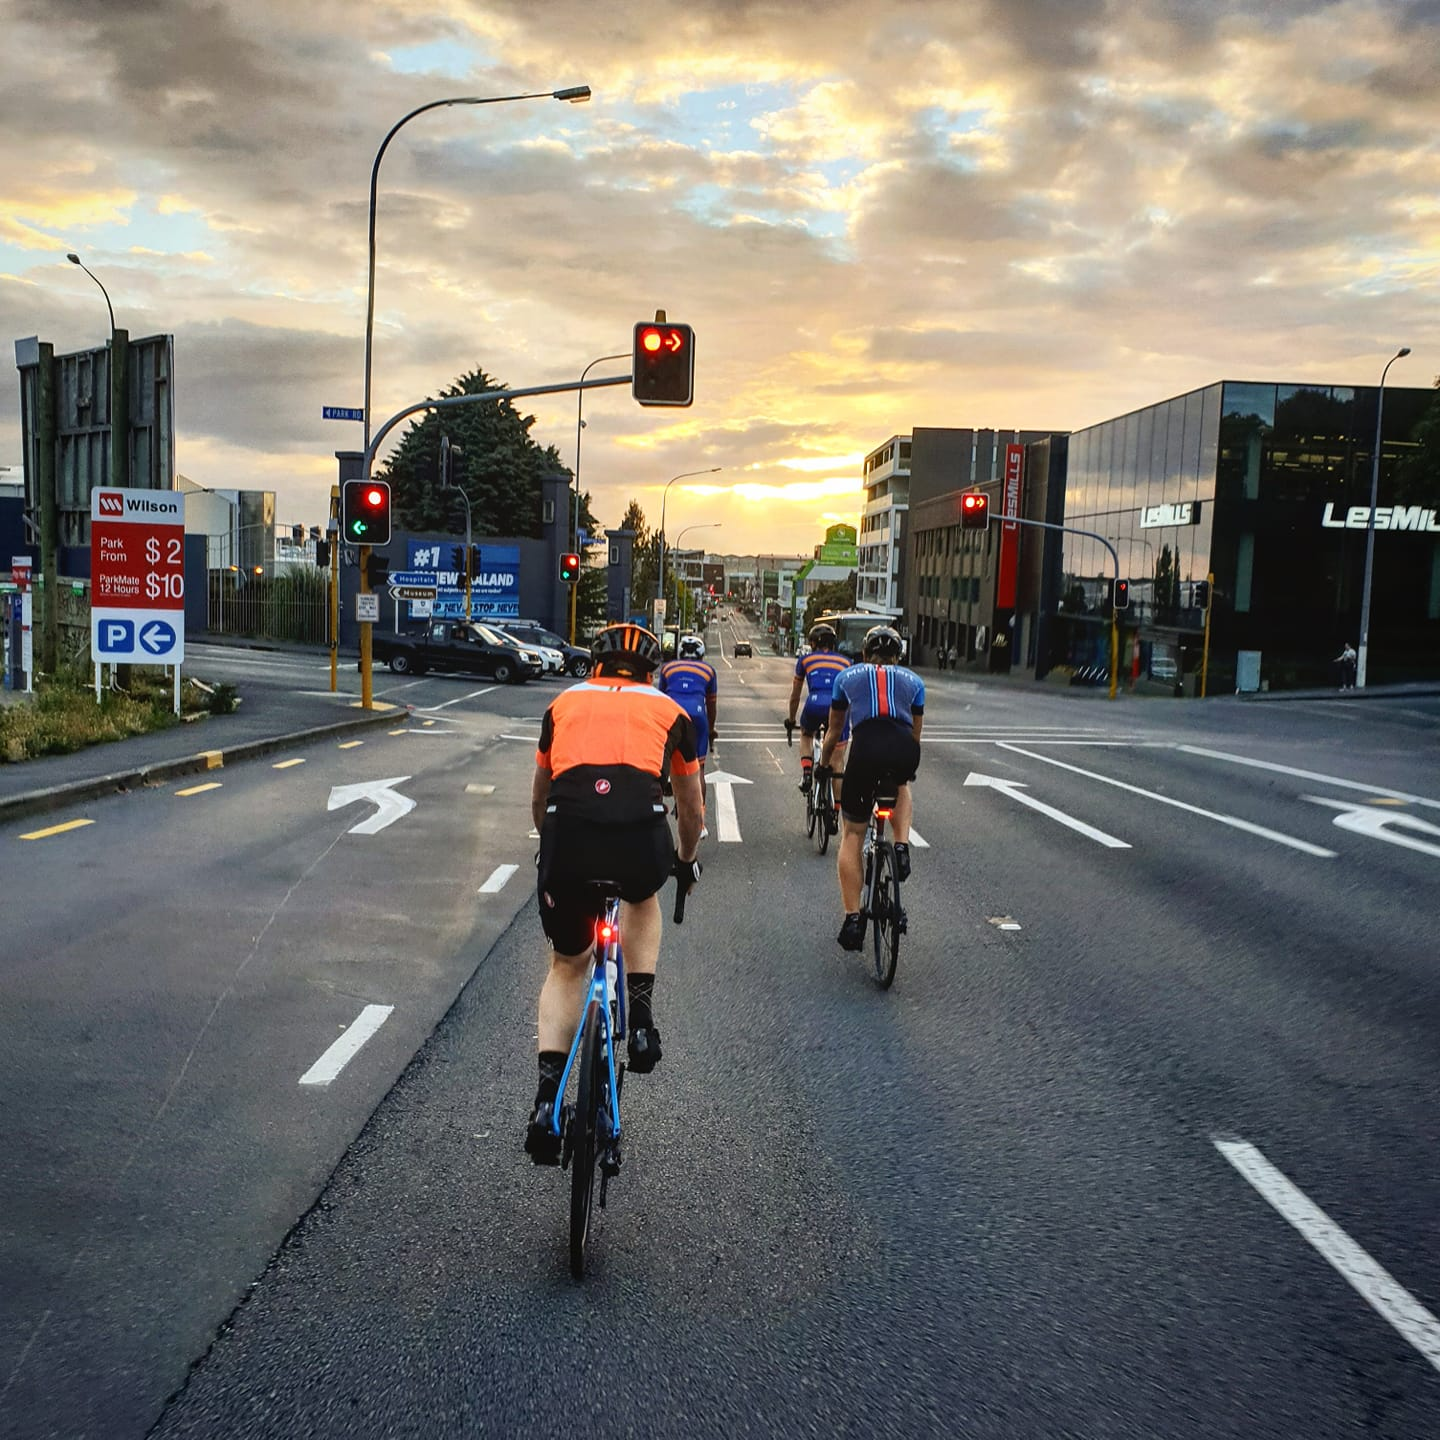 Road Rides - Saturday 7am CYCO / 7:10am BNZ New MarketWednesday 6am CYCOGroup One: 34km/h+ avgGroup Two: 30km/h avg